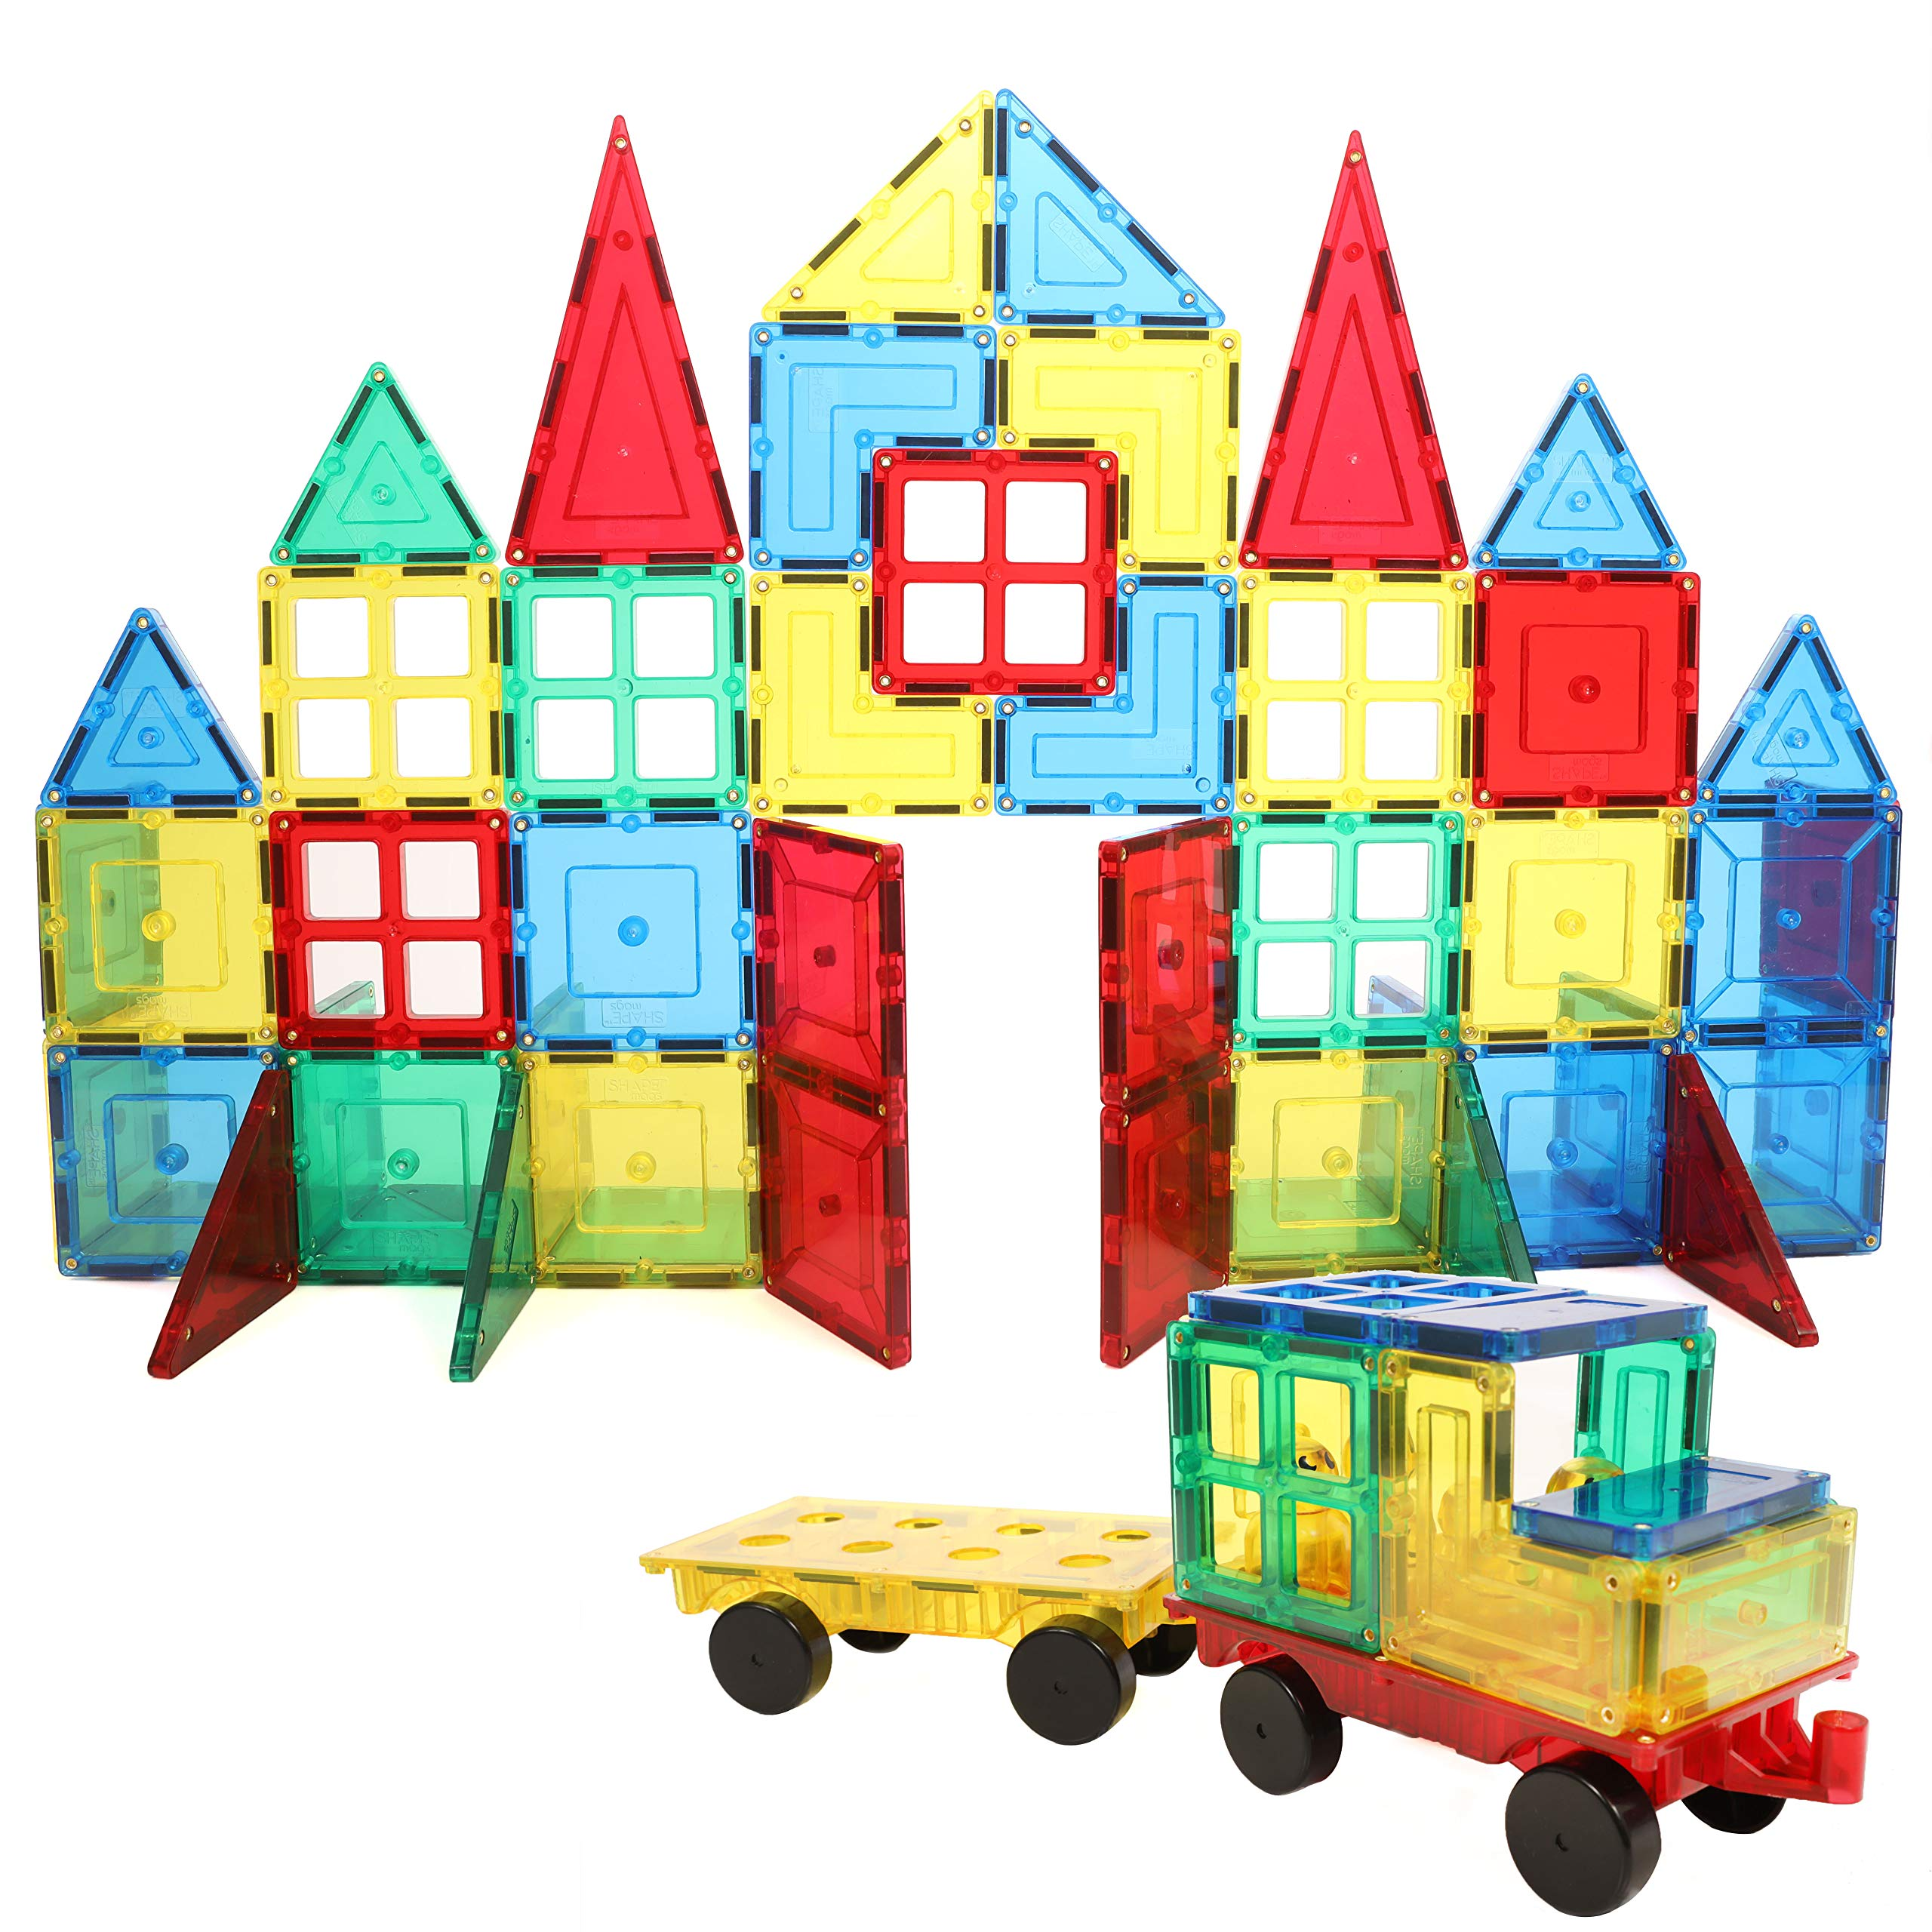 Magnetic Stick N Stack Award Winning 160 Piece MEGA Set Includes 2 Wheel Bases, Windows and More (View All Photos)